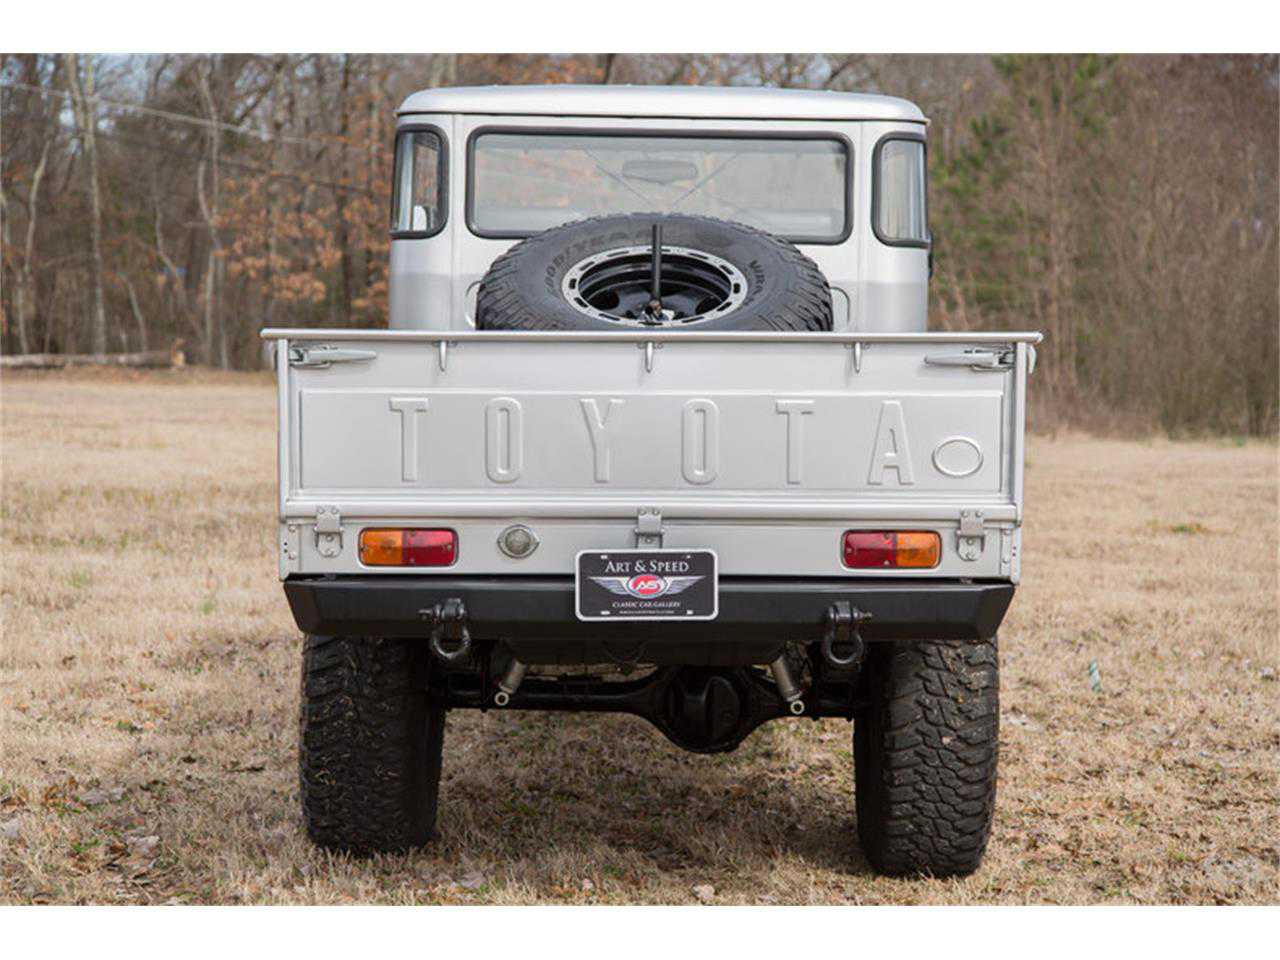 1965 Toyota Land Cruiser Fj45 Pickup For Sale In Collierville Tn Prev